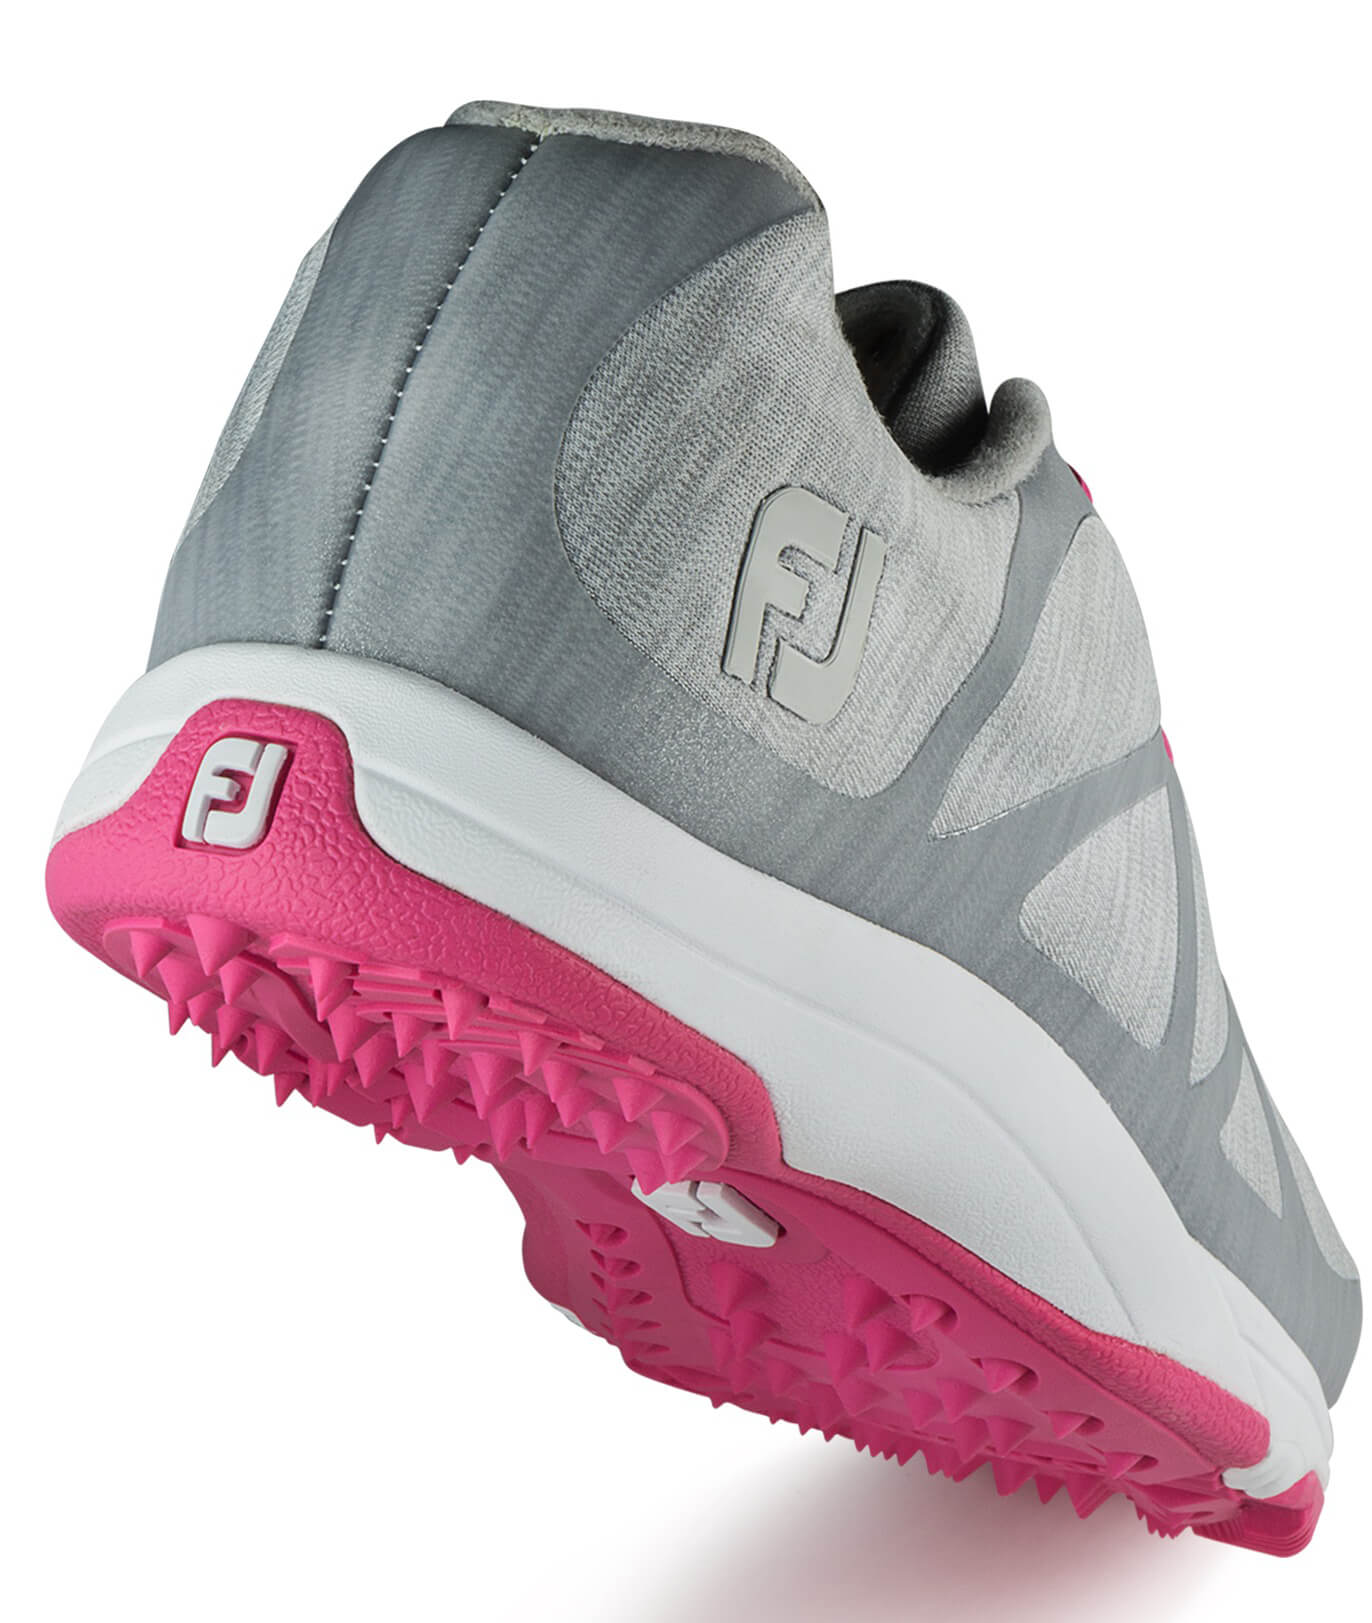 FootJoy-Women-039-s-Leisure-Golf-Shoes-Spikeless-Ladies-New-Choose-Color-amp-Size thumbnail 4